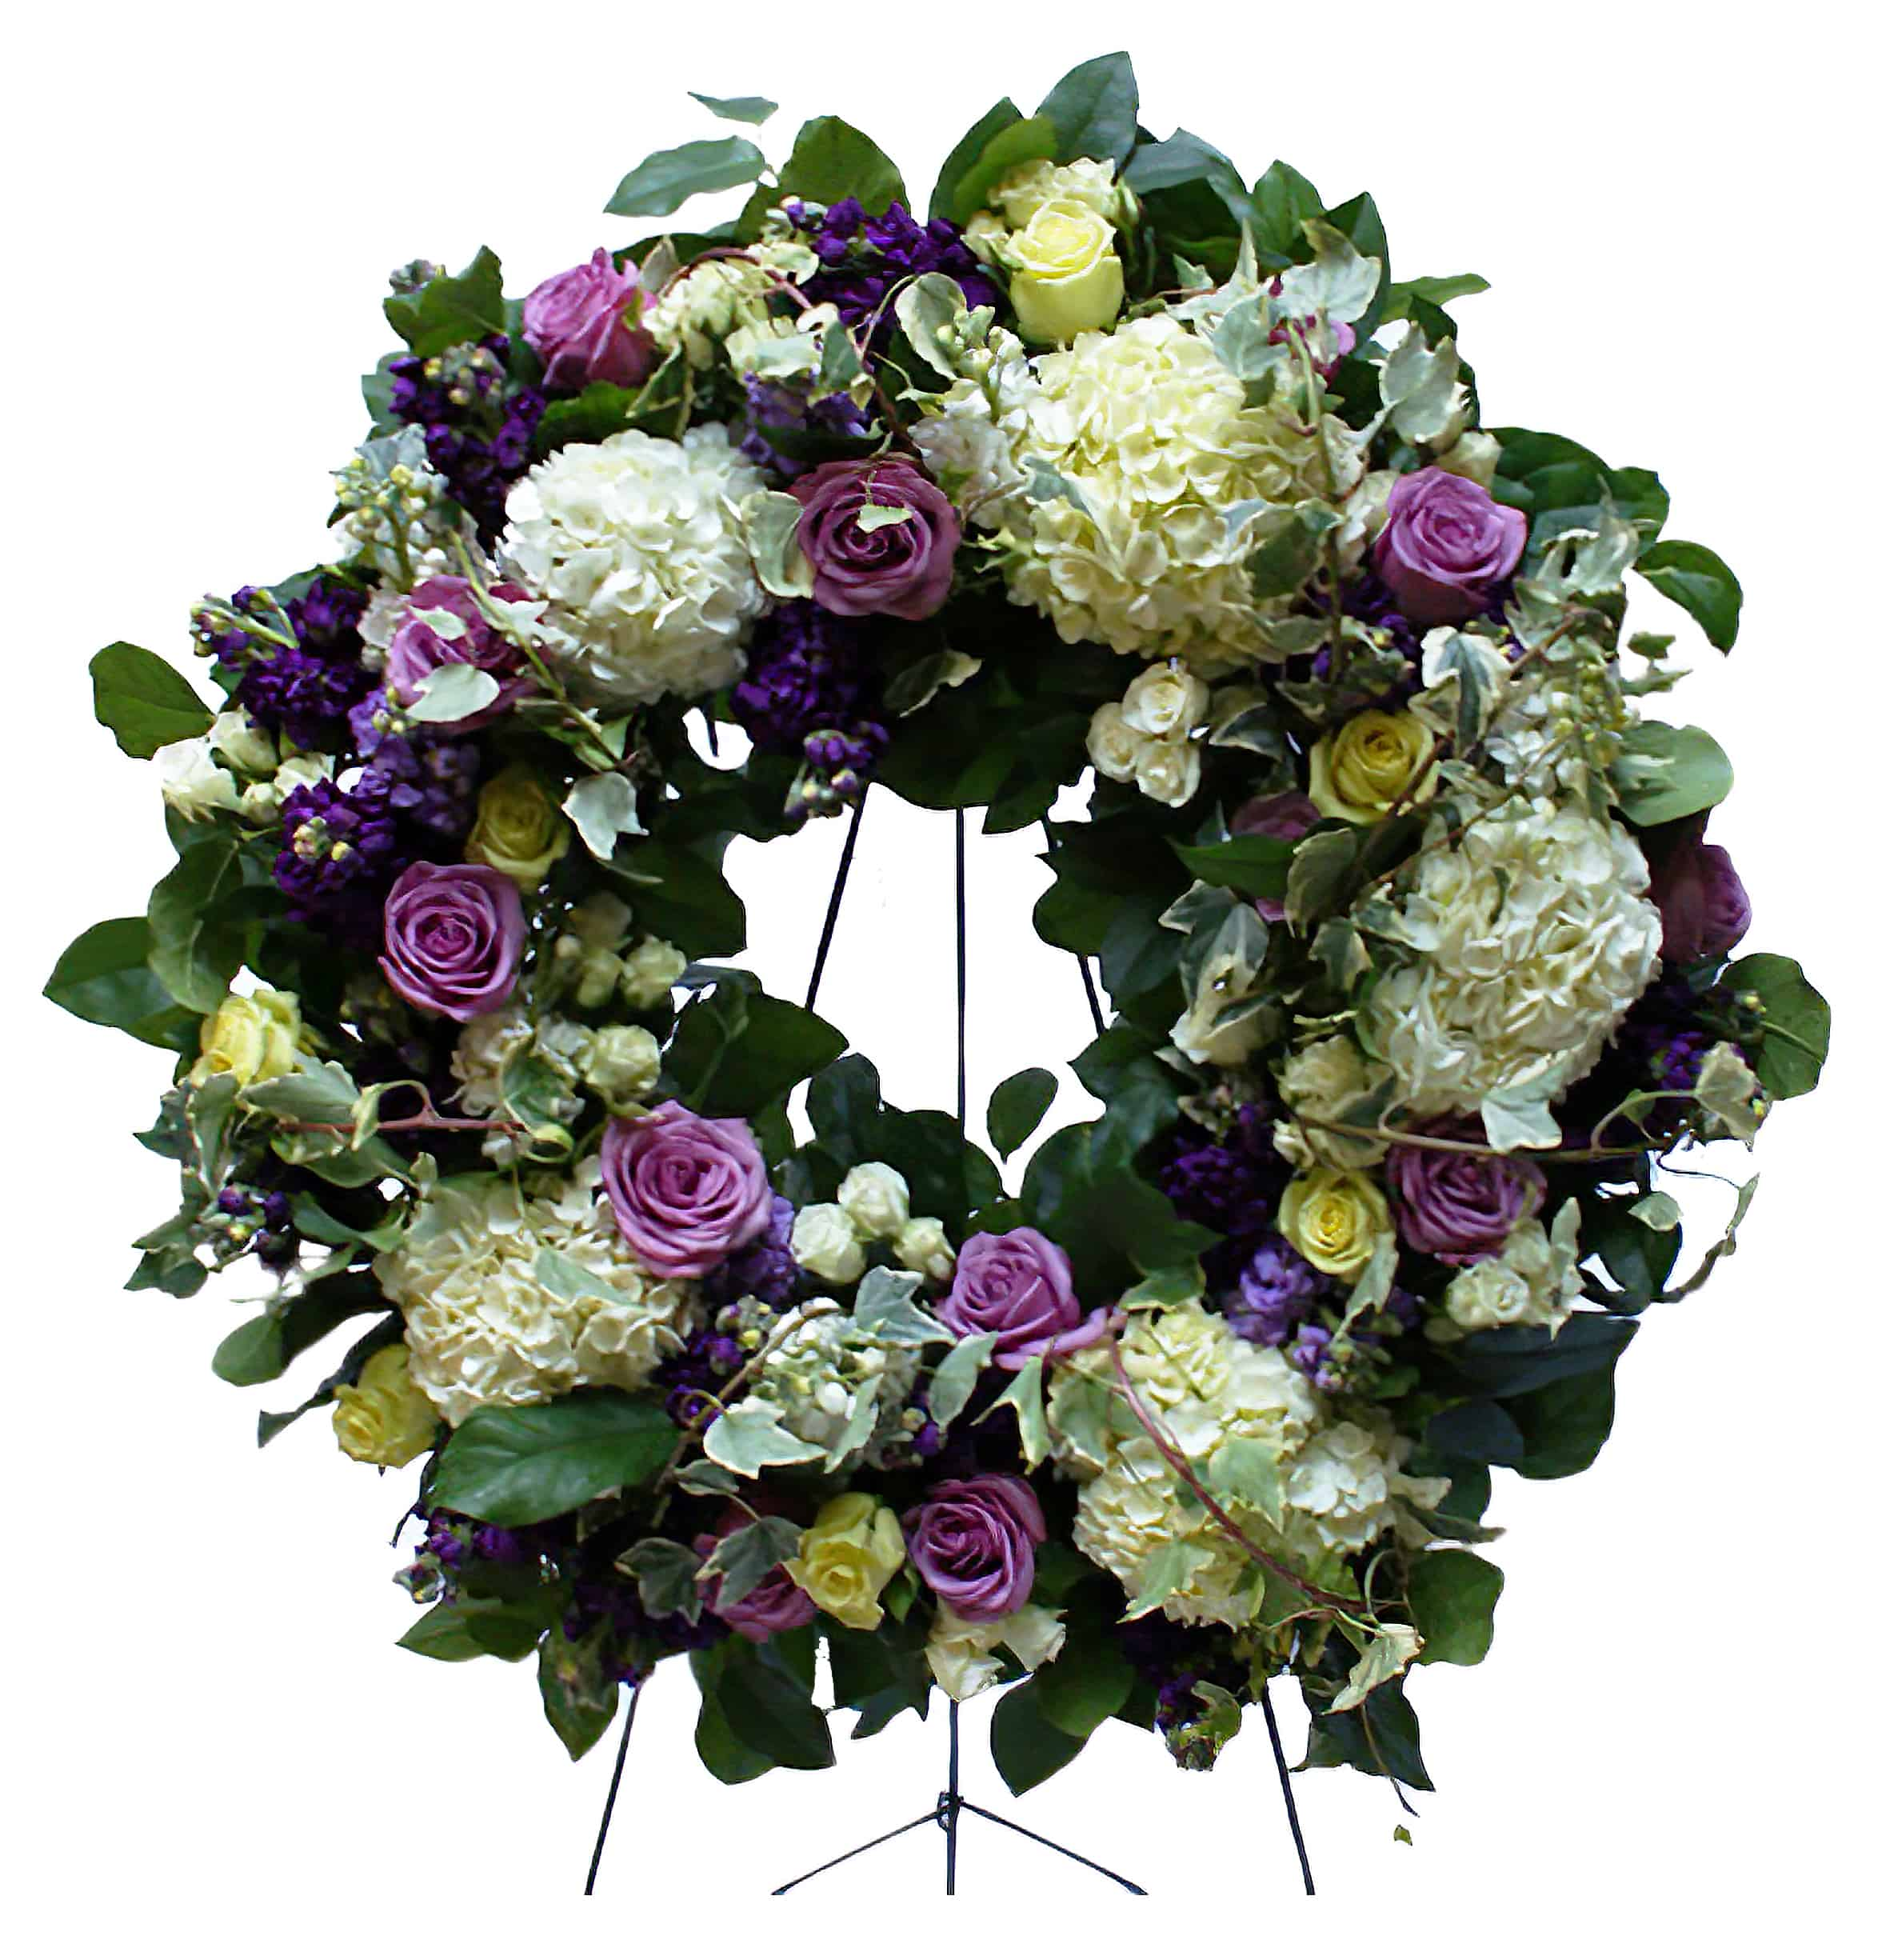 Sympathy Wreath on Standing Easel